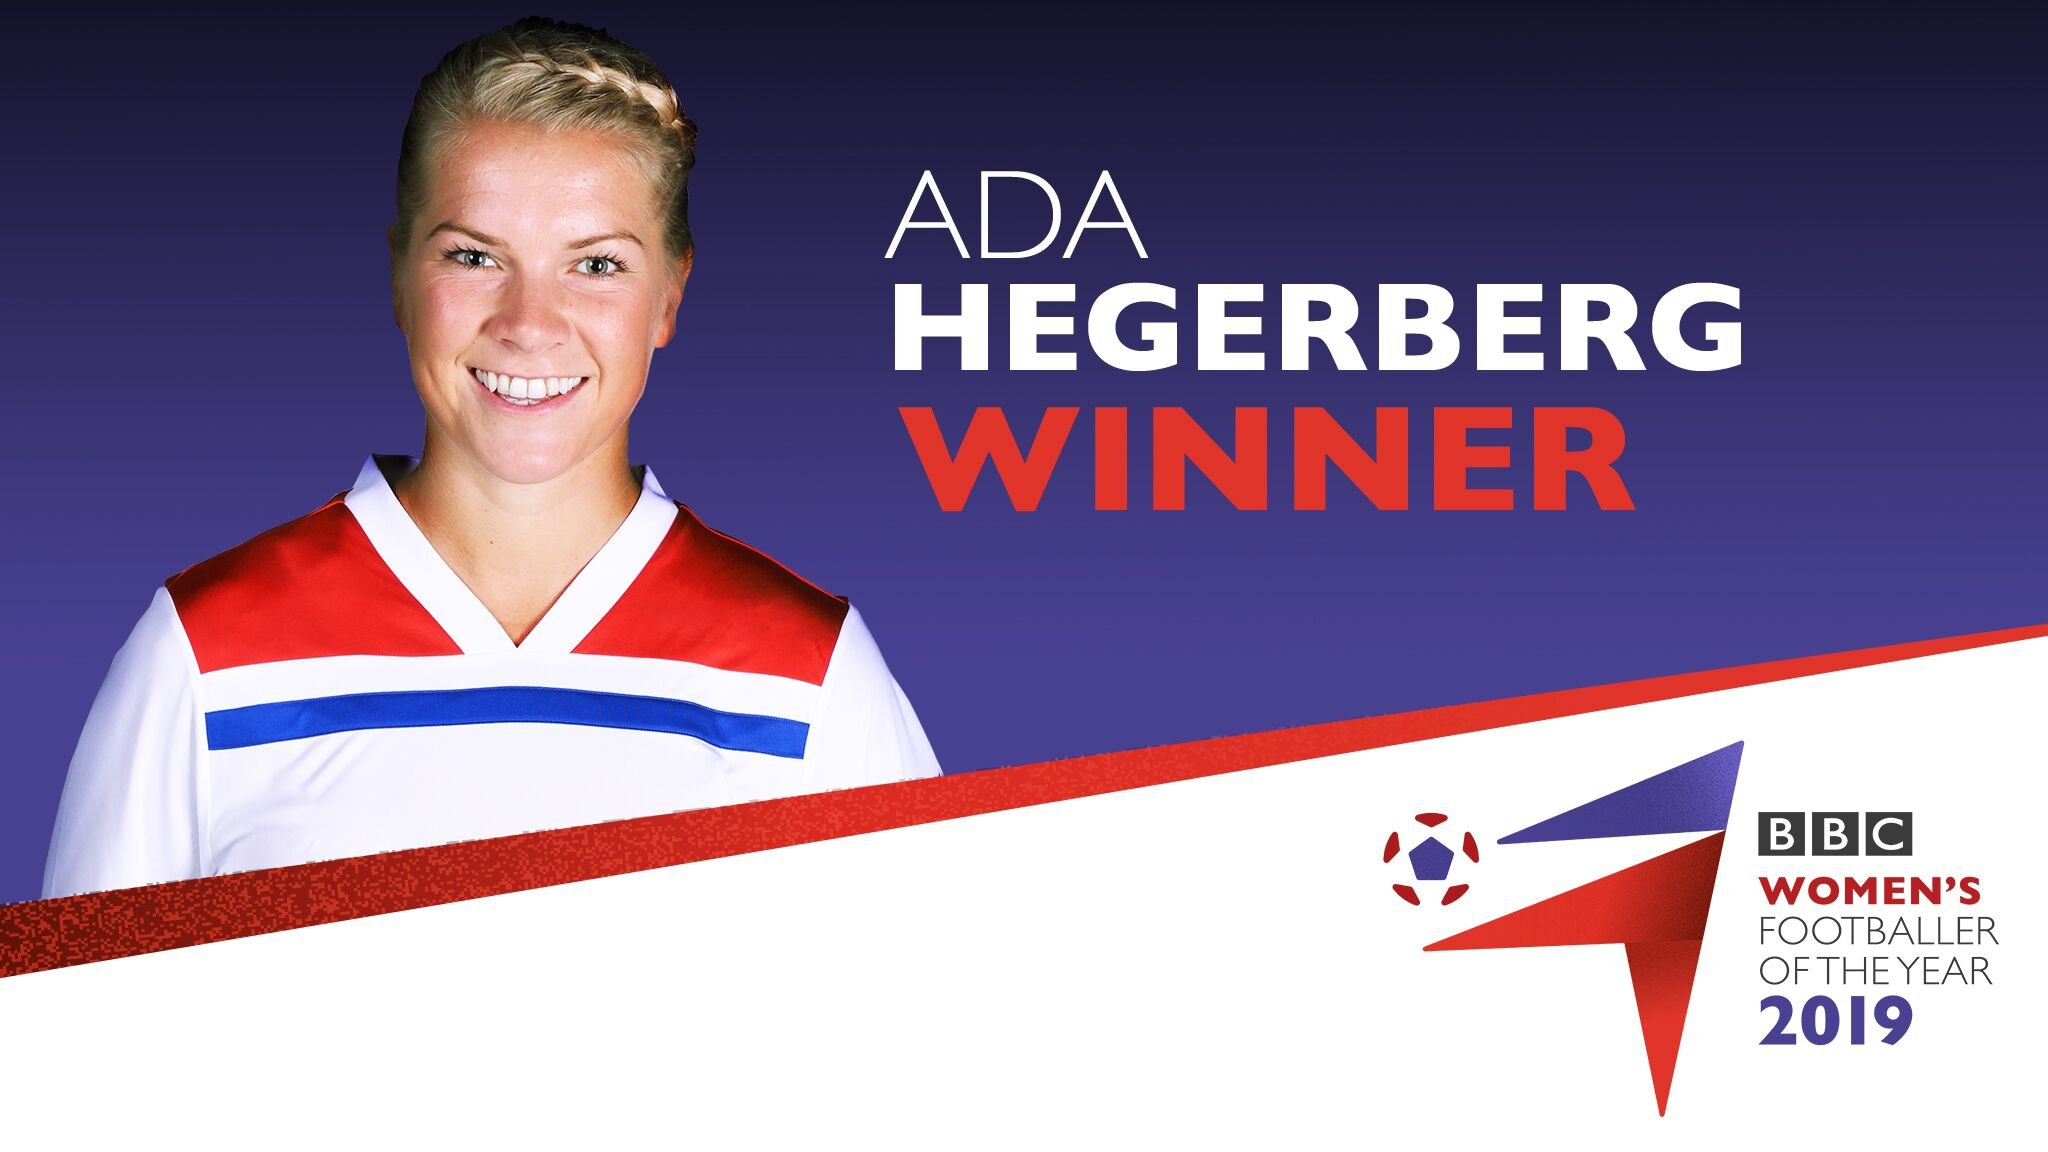 Hegerberg wins BBC Women's Footballer of the Year award